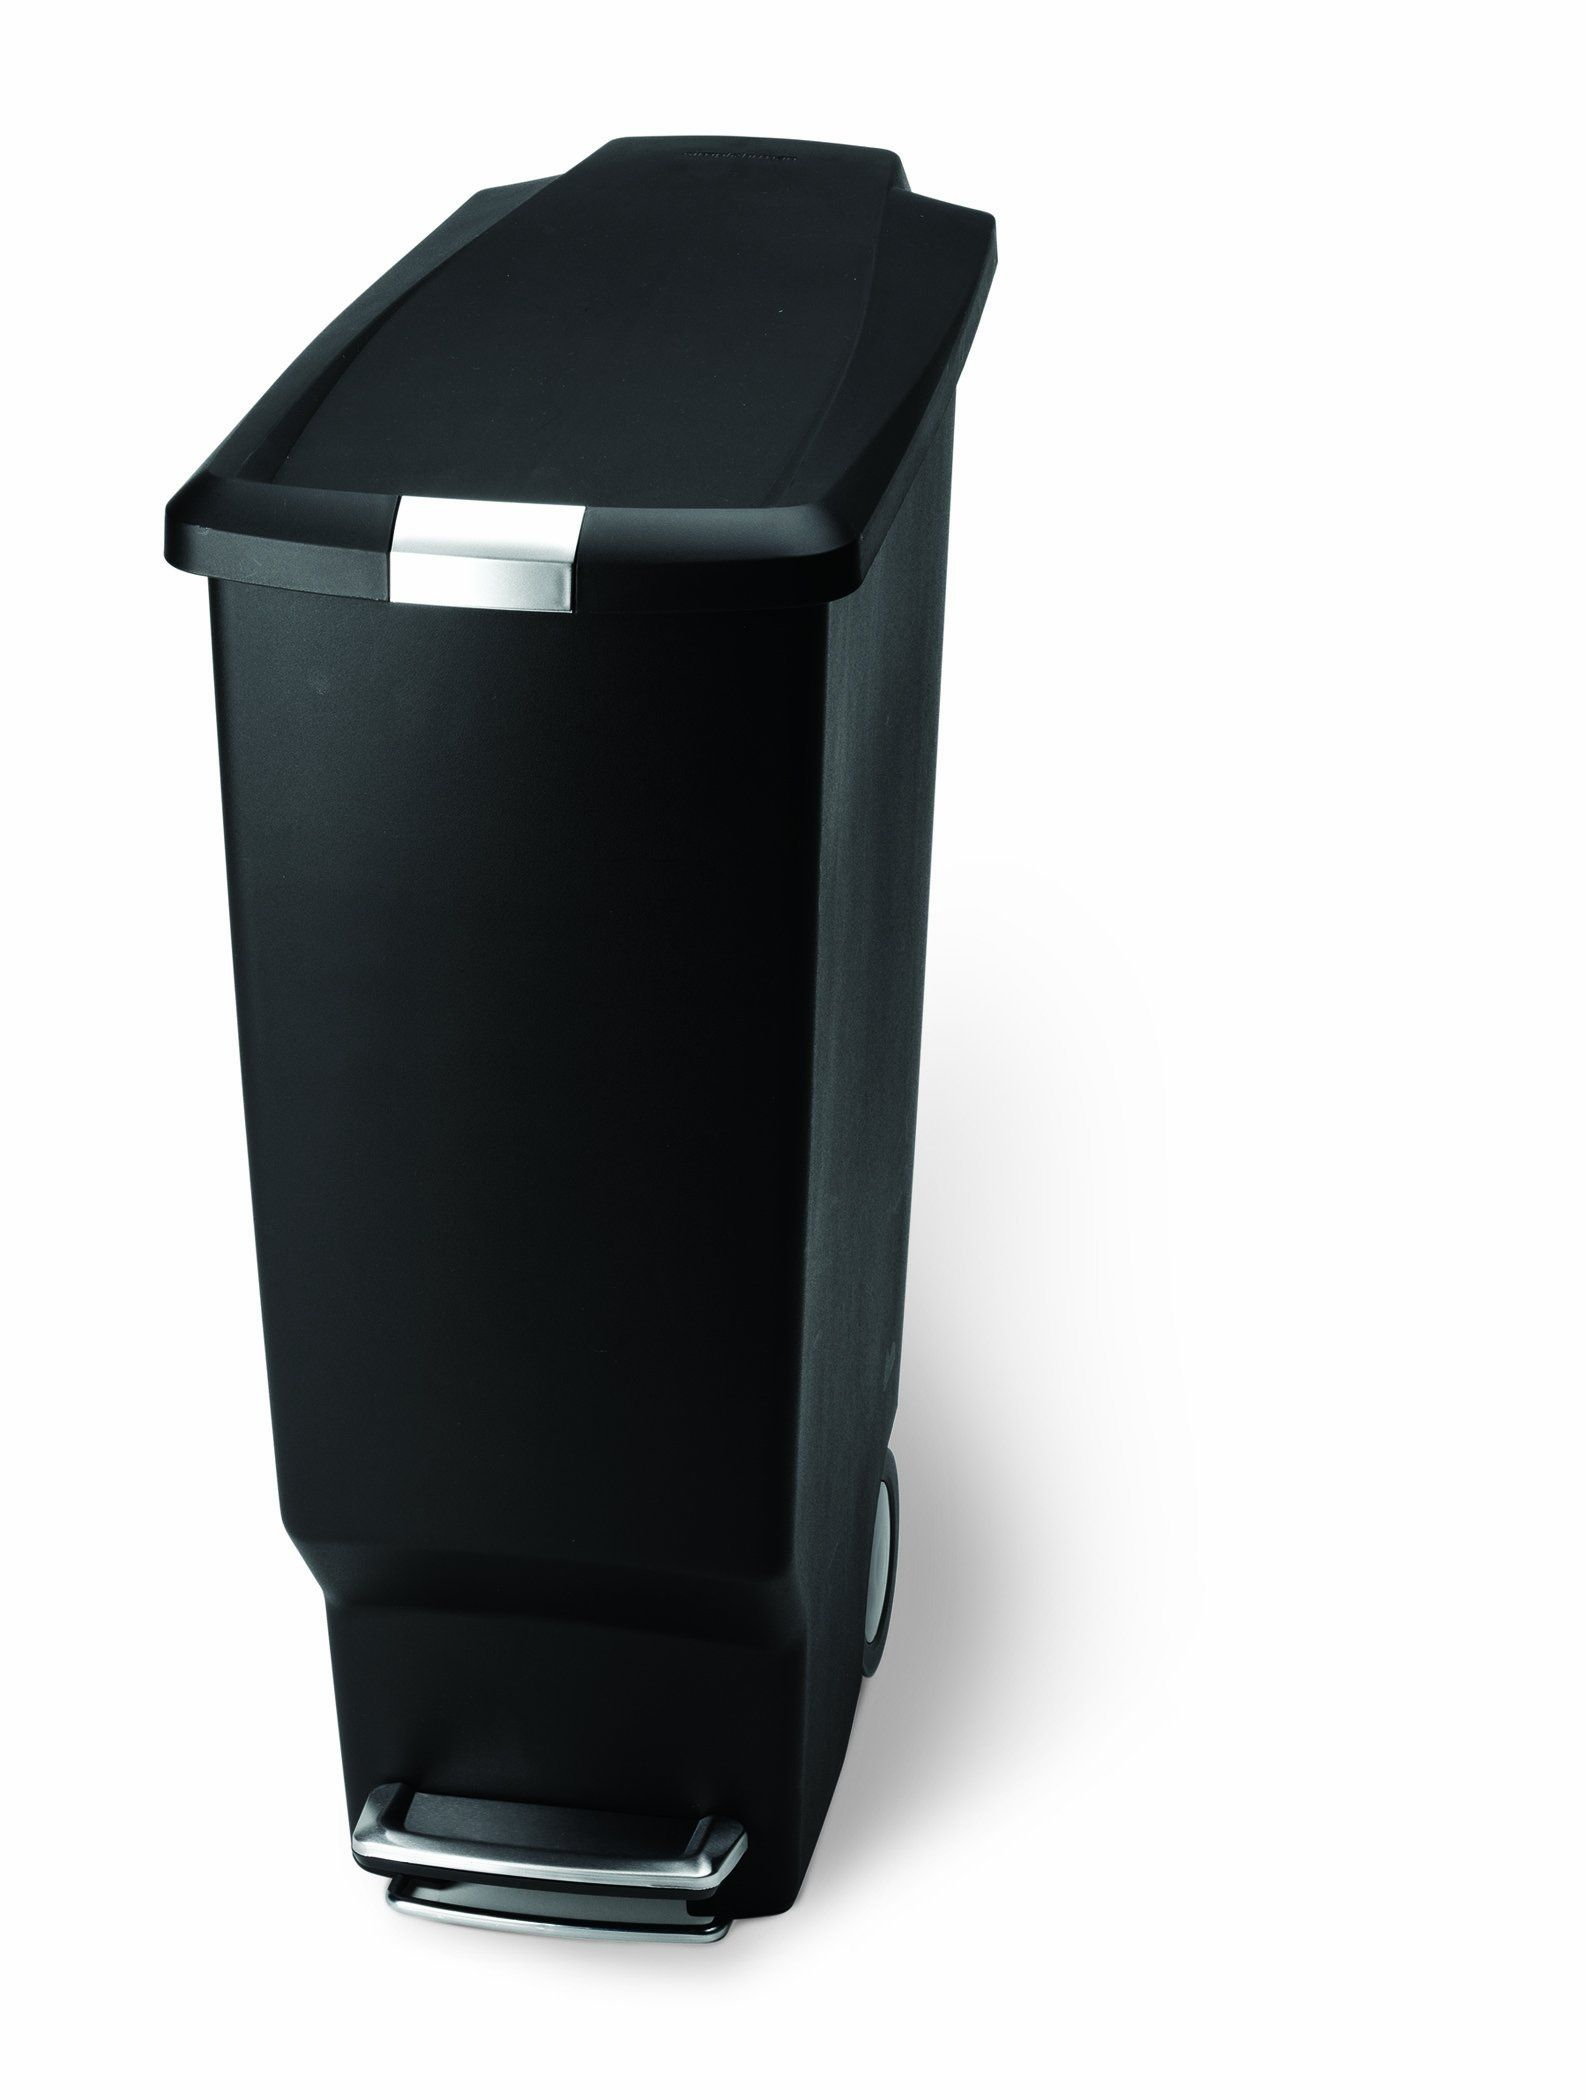 slim kitchen trash can bar stools for islands simplehuman plastic step black 40